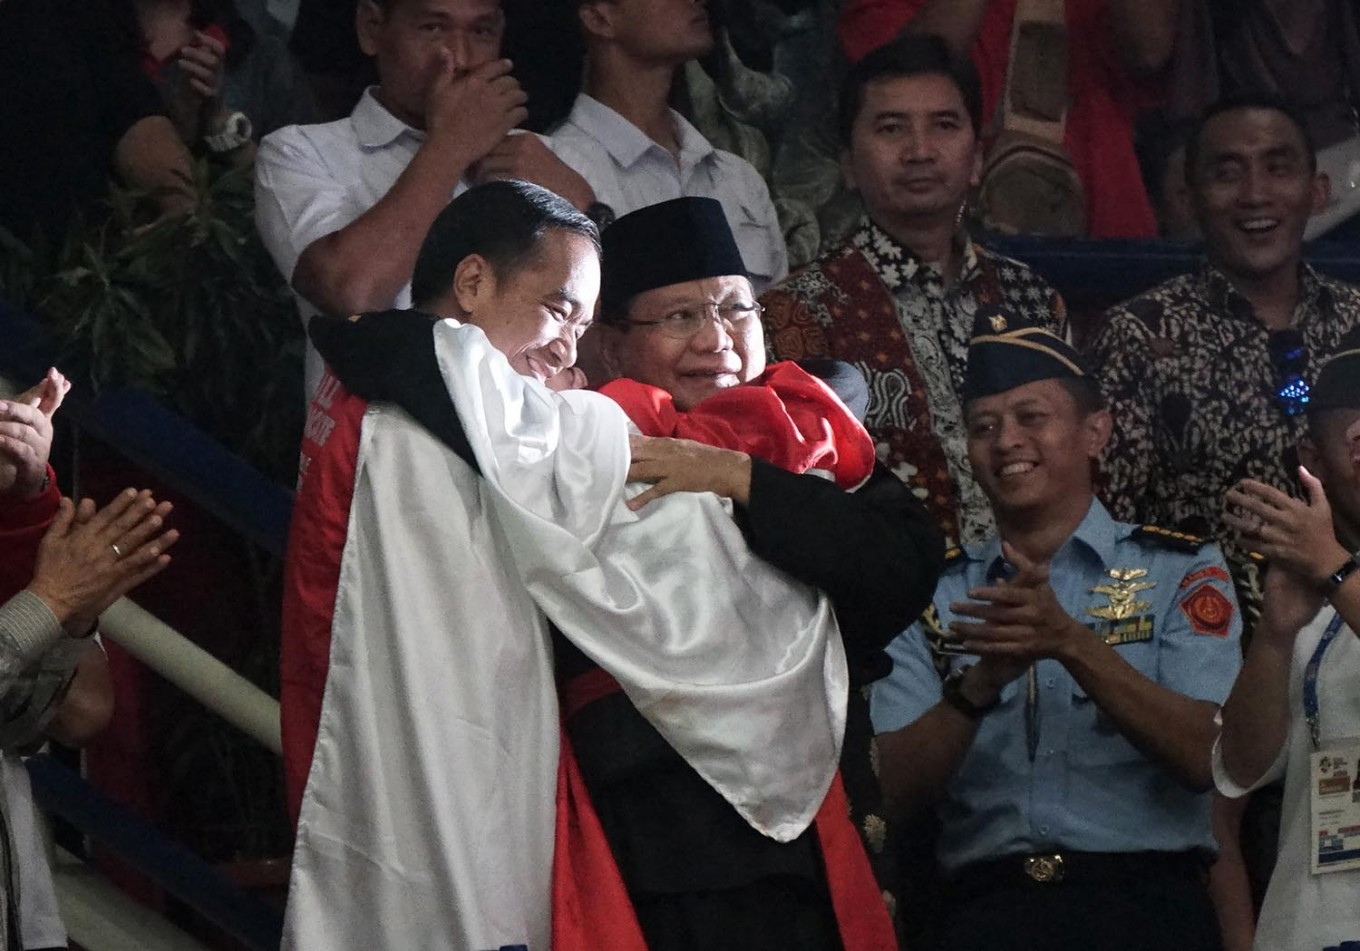 Indonesian politics could do with more sportsmanship